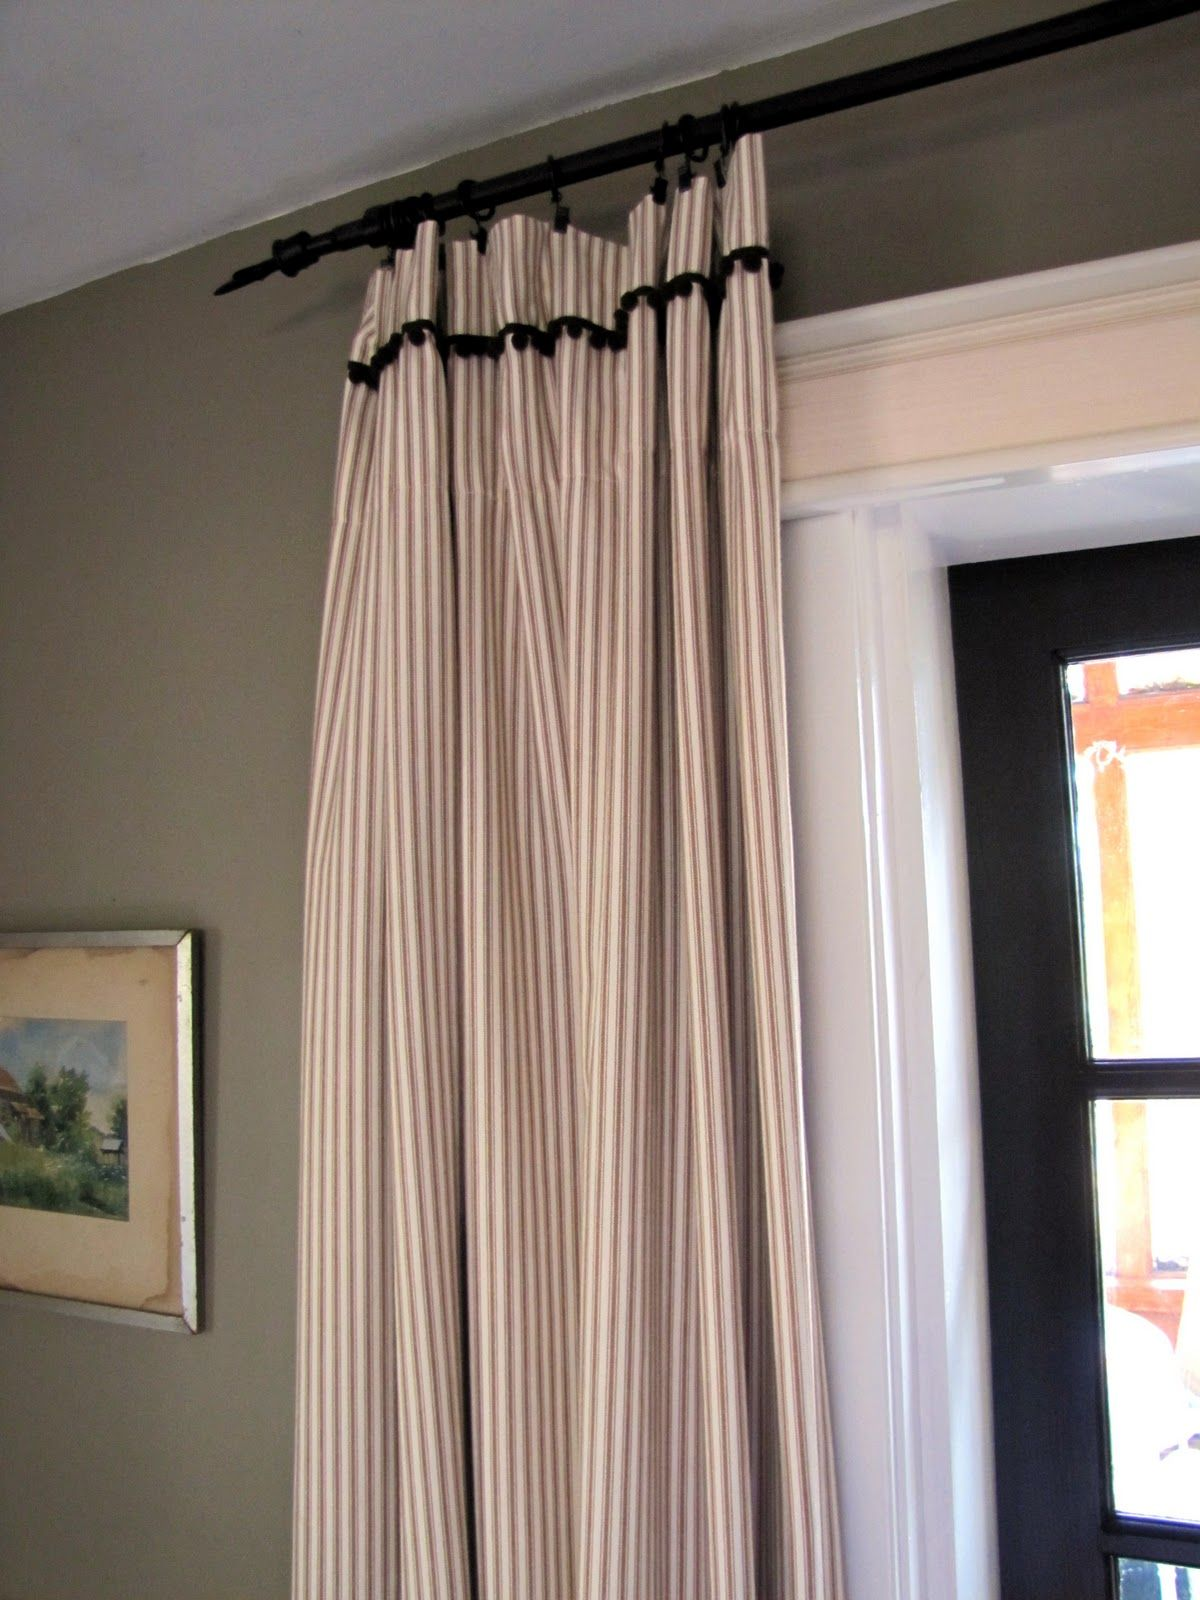 pillow ticking curtains these curtains are me I love